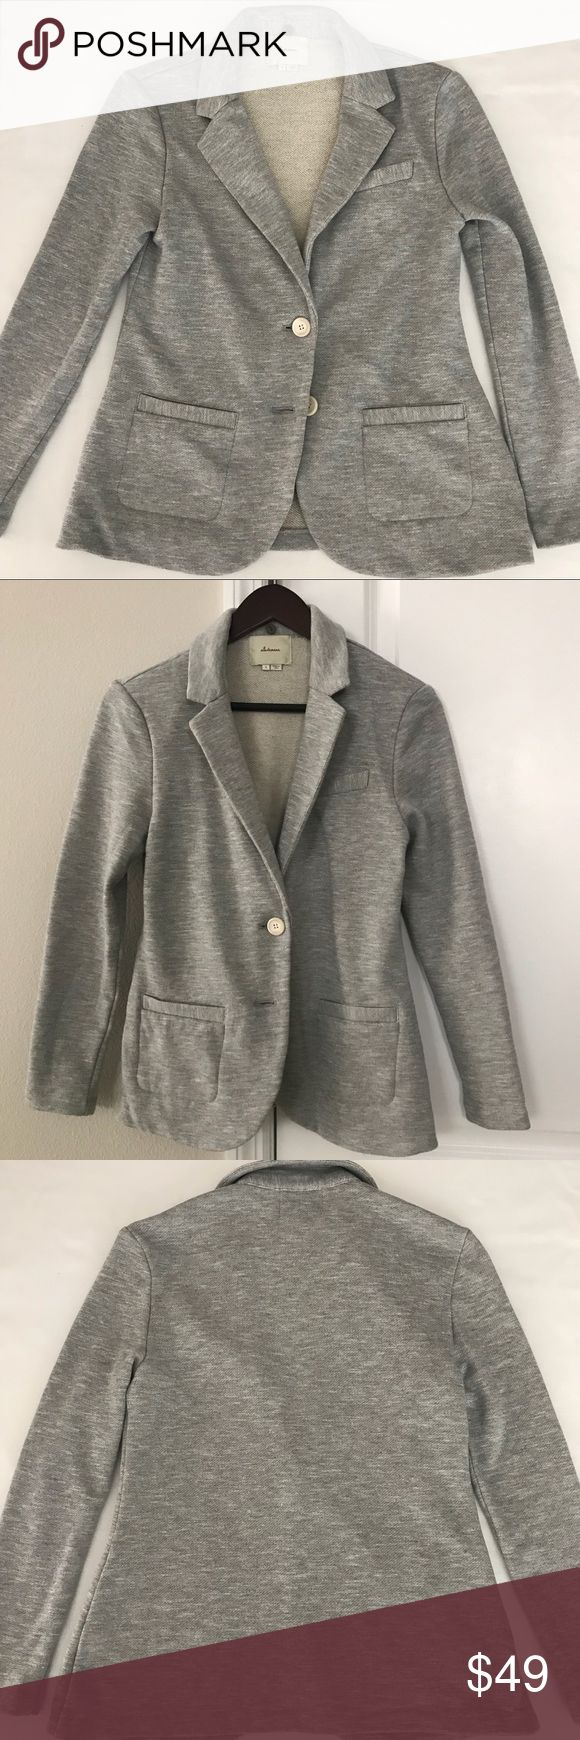 Anthropologie Elevenses.  Gray jacket. Anthropologie Elevenses.  Gray jacket. Super cute jacket /blazer for those chilly nights. No snags or stains in great condition. Anthropologie Jackets & Coats